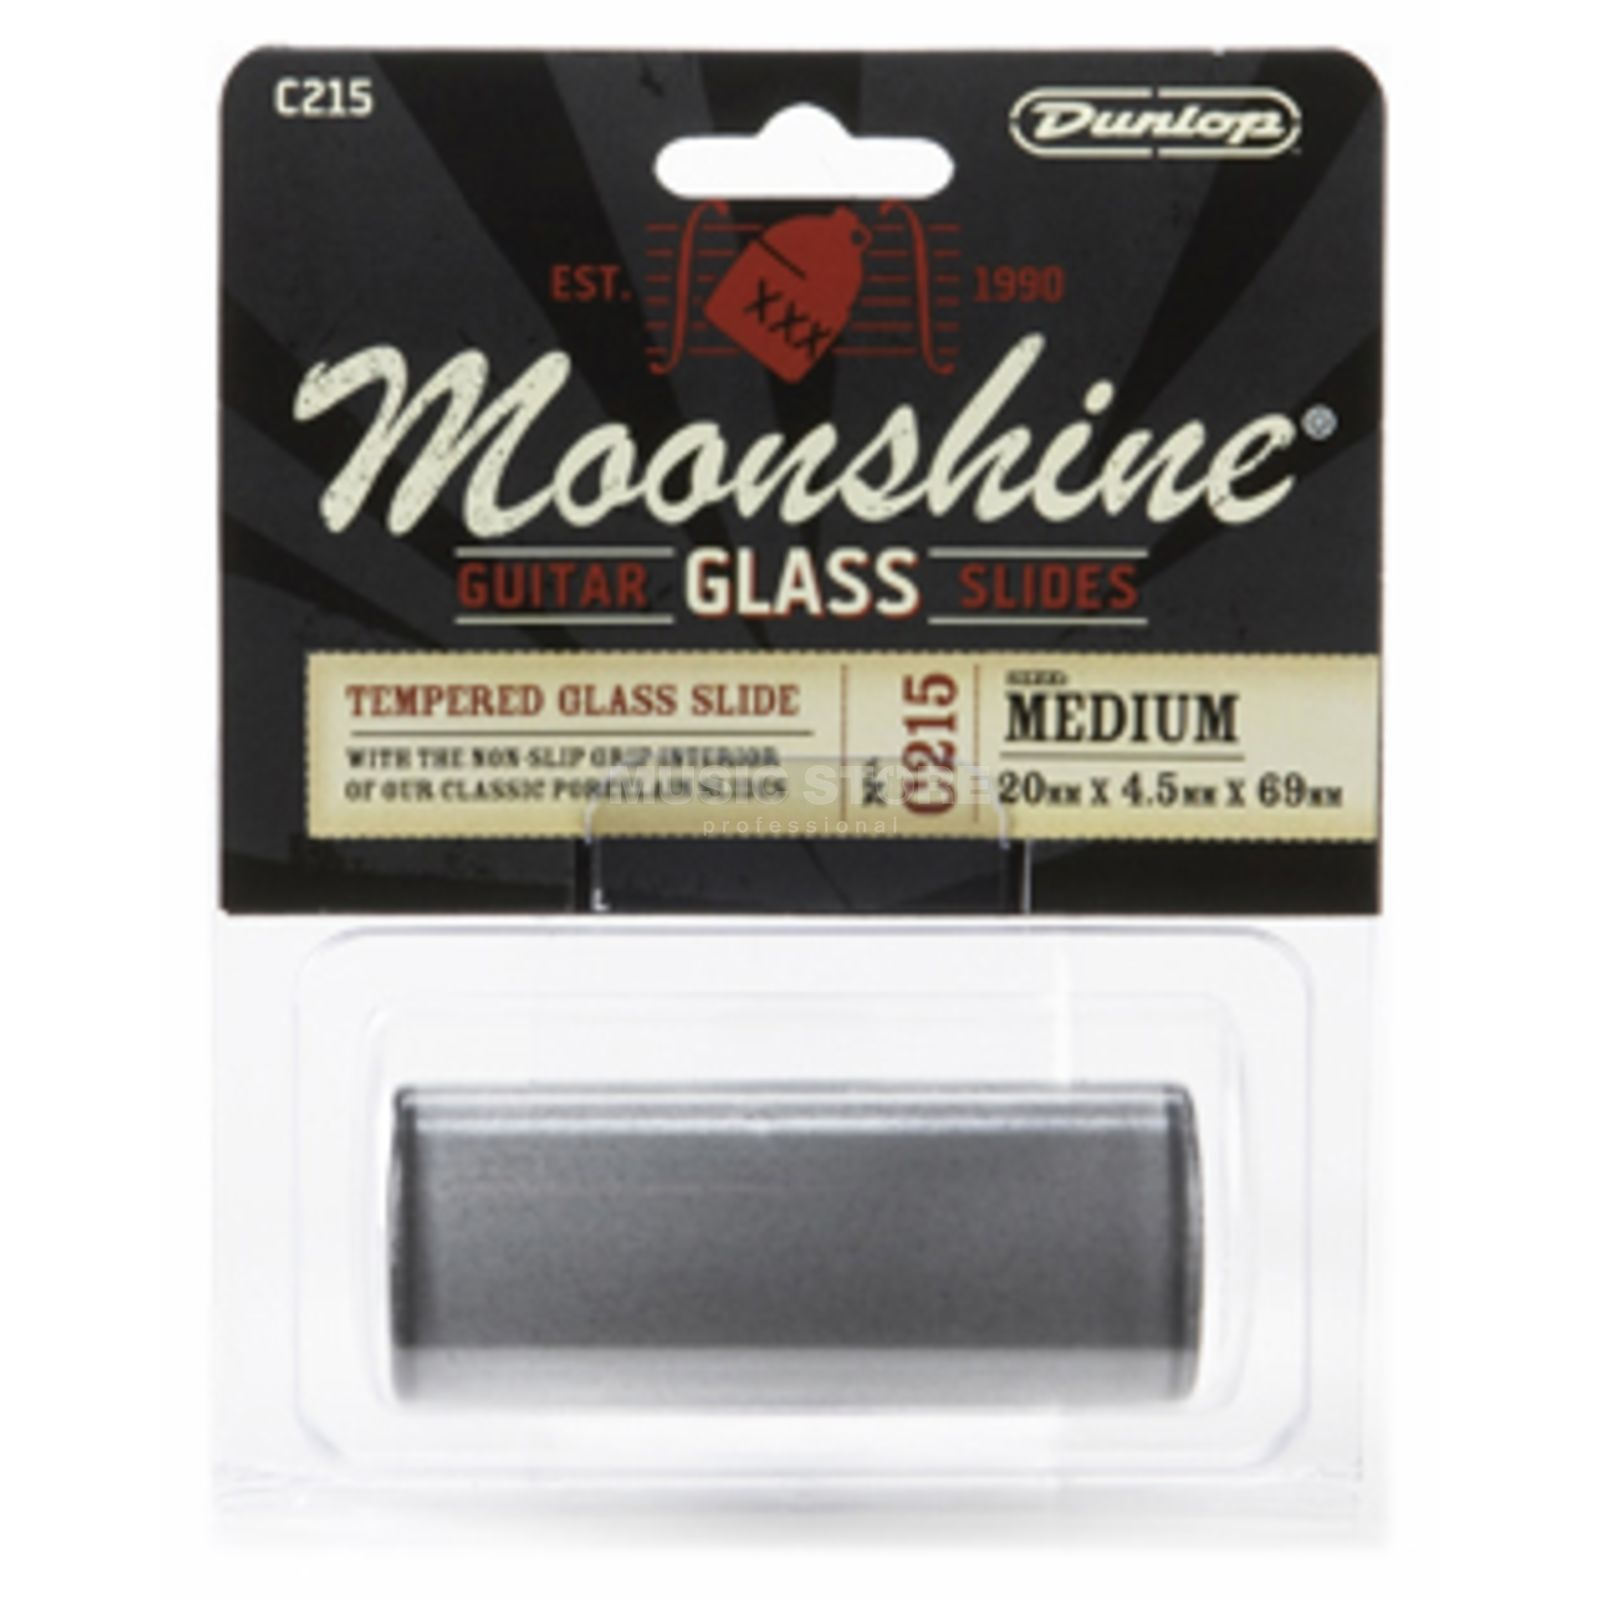 Dunlop C215 Moonshine Glass Slide medium Produktbillede